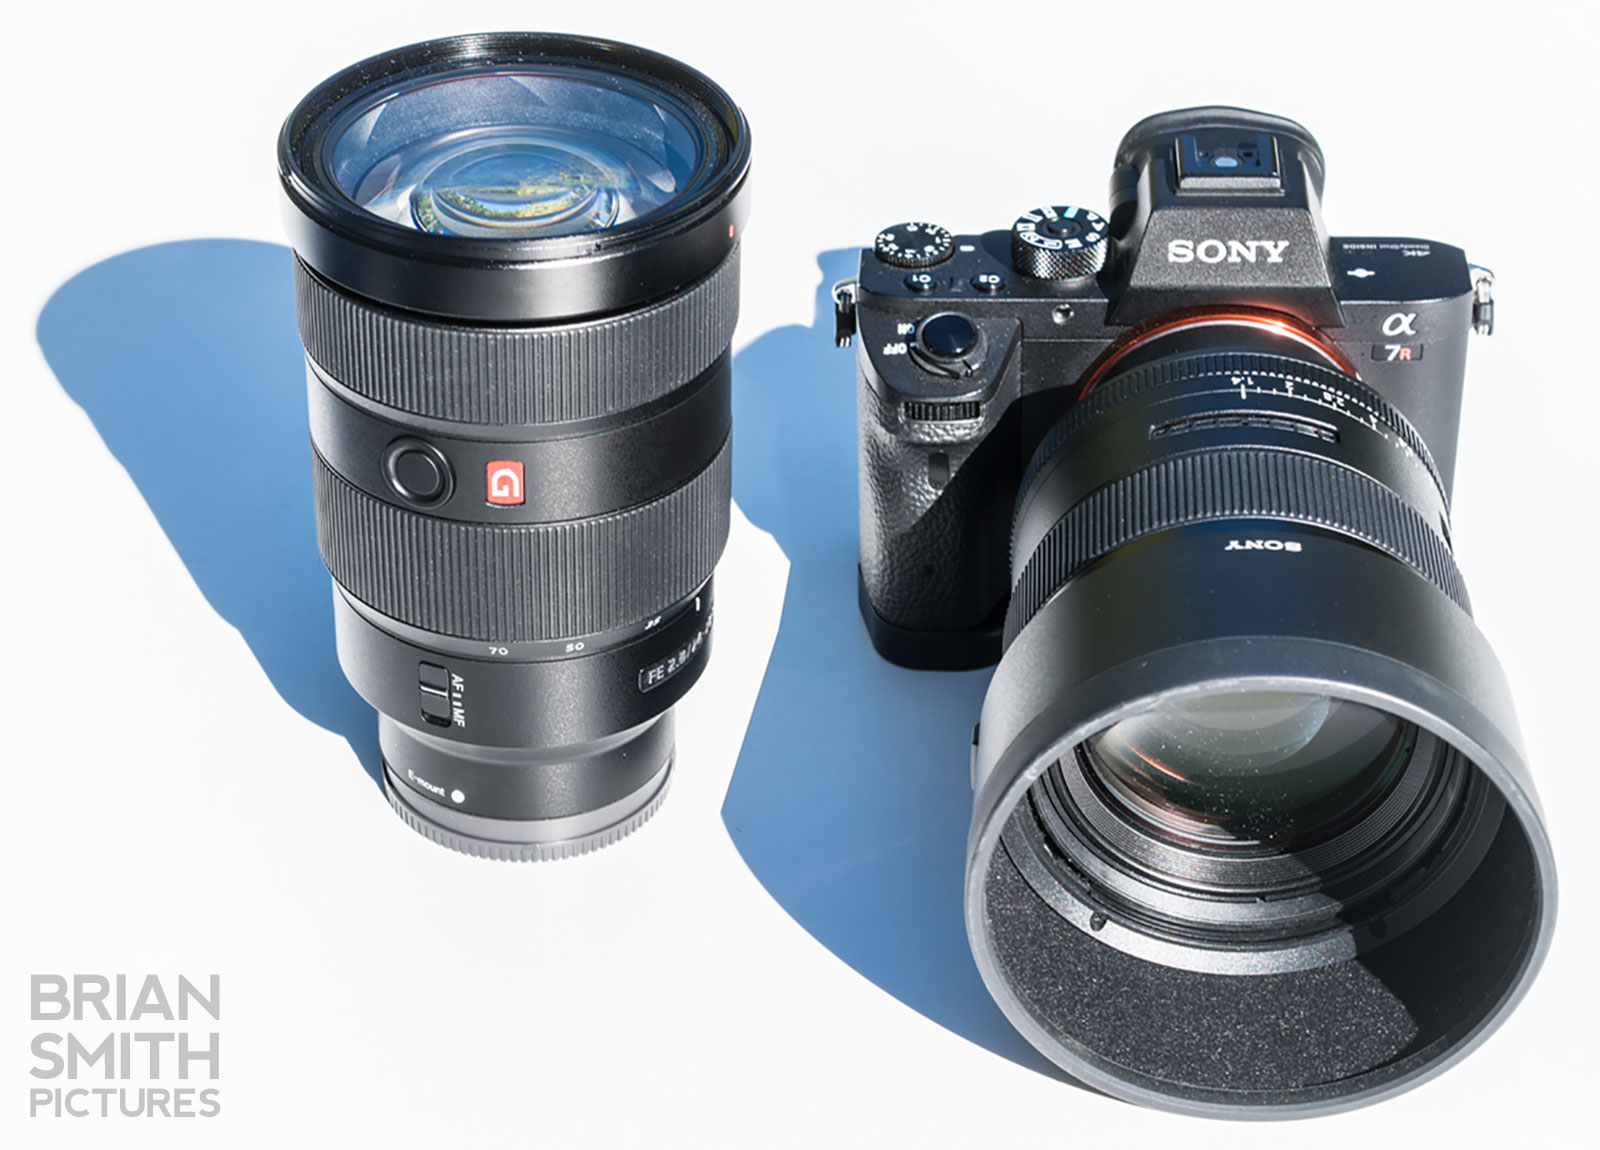 Sony FE 24-70mm F2.8 and 85mm F1.4 G Master Lenses